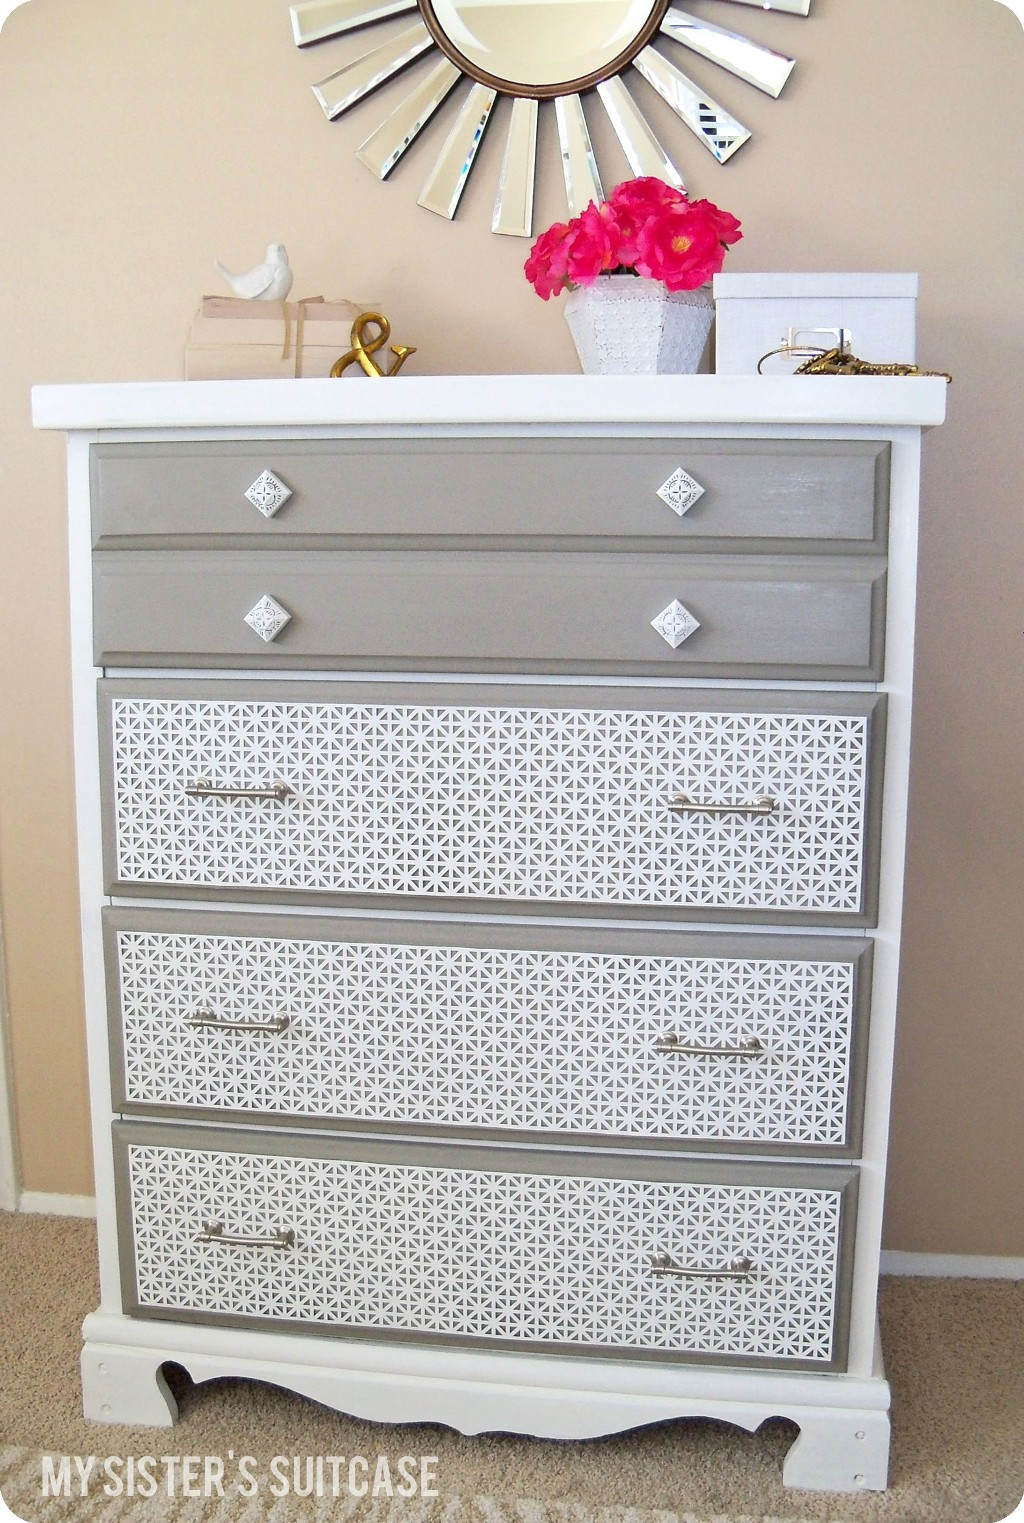 Remodelaholic decorative dresser makeover How to renovate old furniture